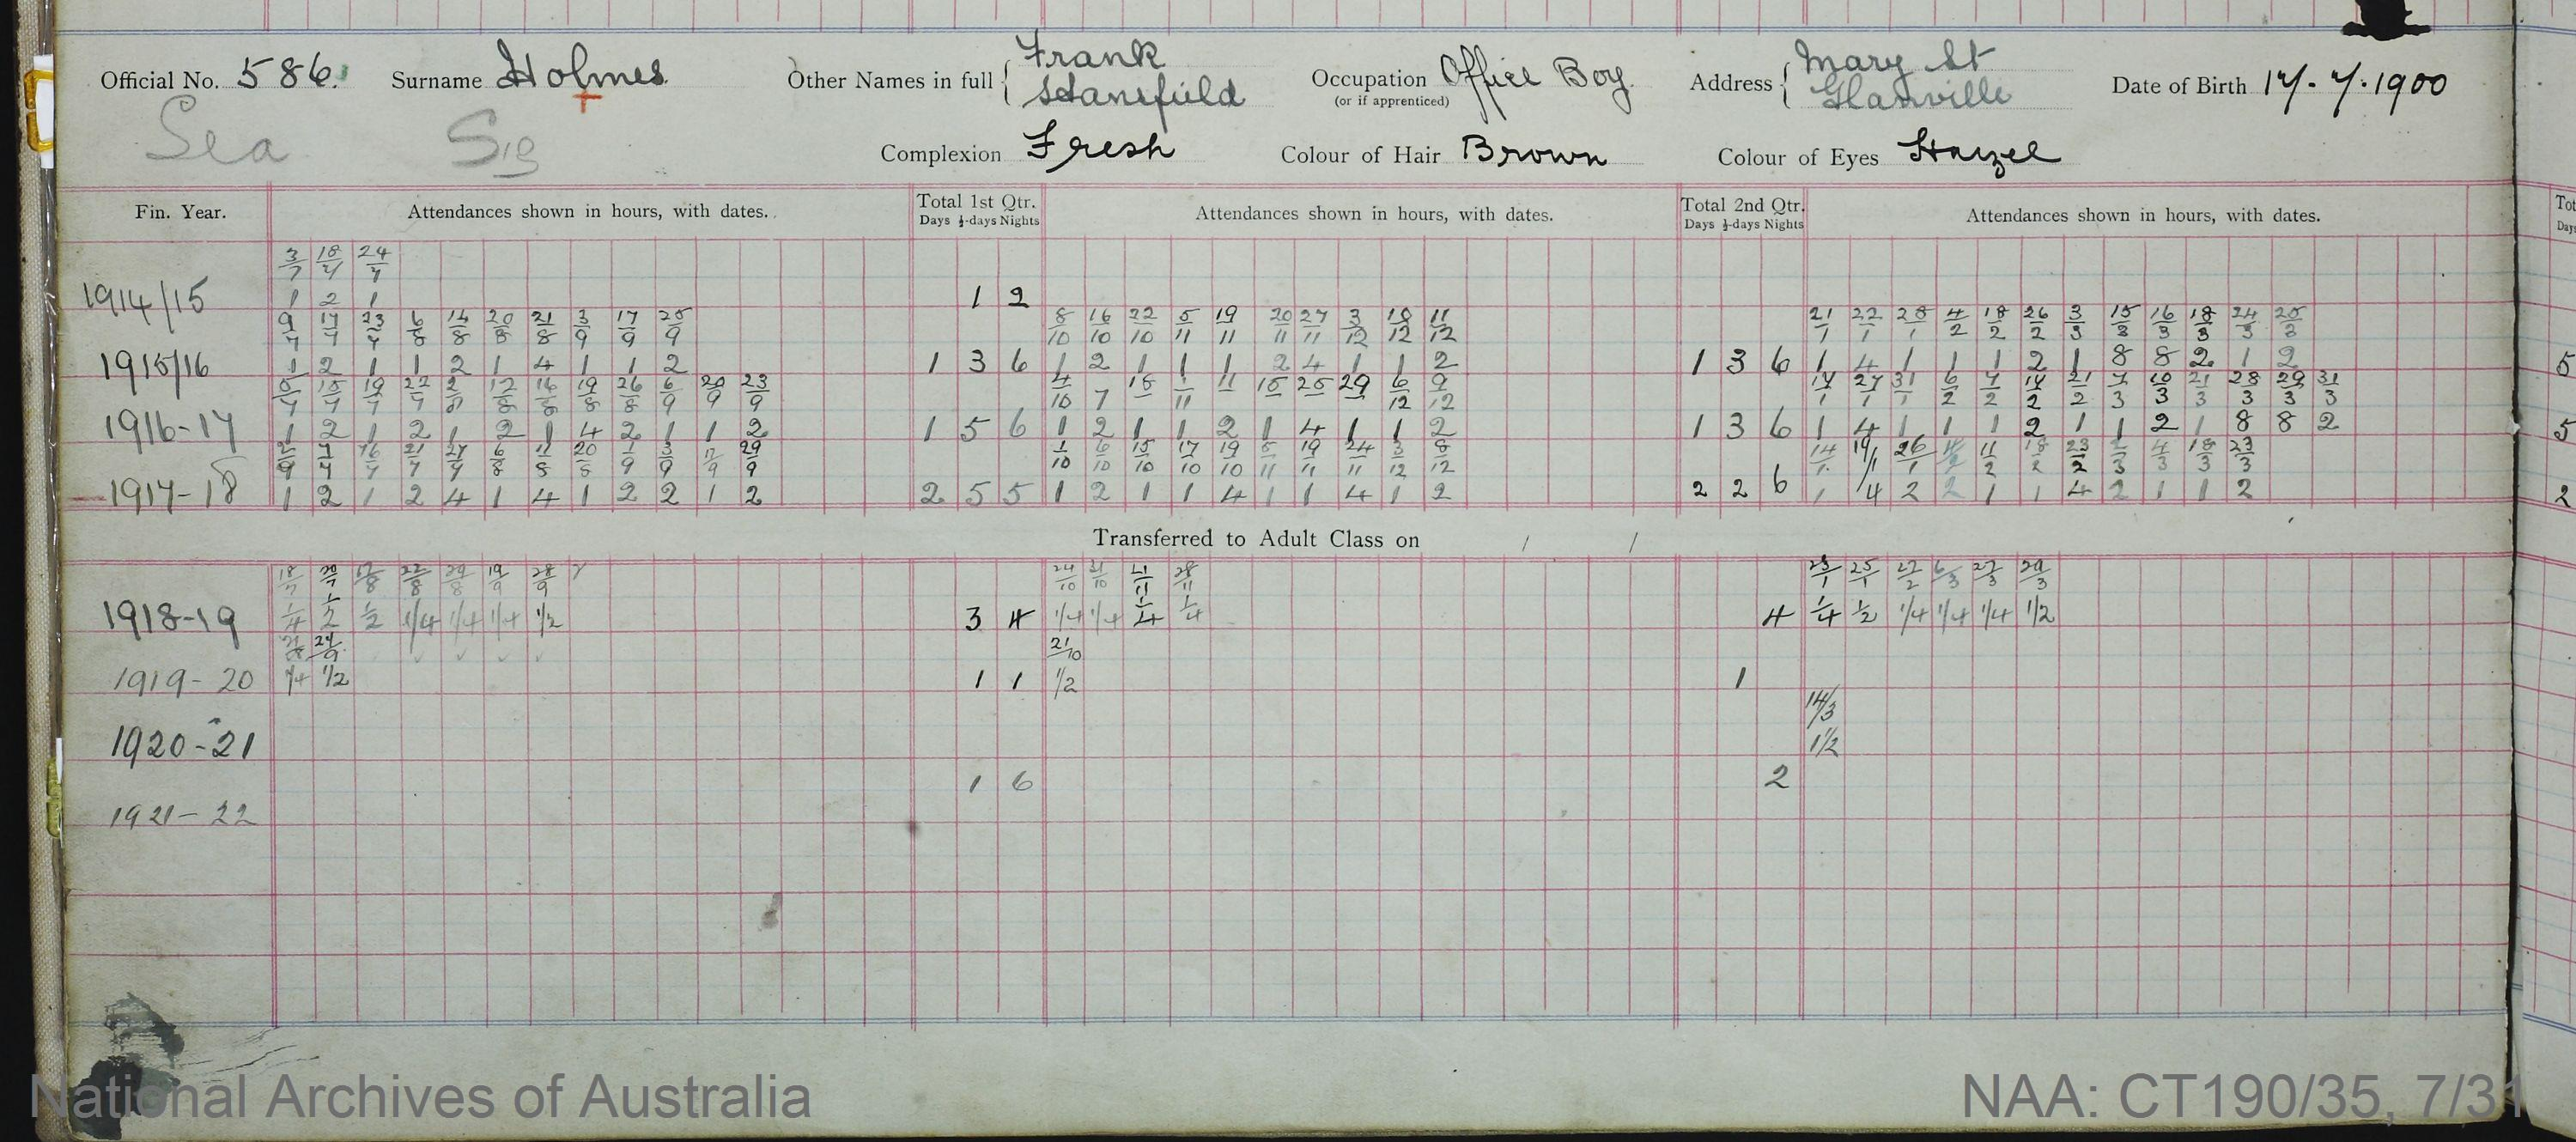 SURNAME - HOLMES;  GIVEN NAME(S) - Frank Stansfield;  OFFICIAL NUMBER - 586;  DATE OF BIRTH - 17 July 1900;  PLACE OF BIRTH - [Unknown];  NEXT OF KIN - [Unknown];  SERVICE/STATION - South Australia;  REGISTRATION DATE - 13 January 1914